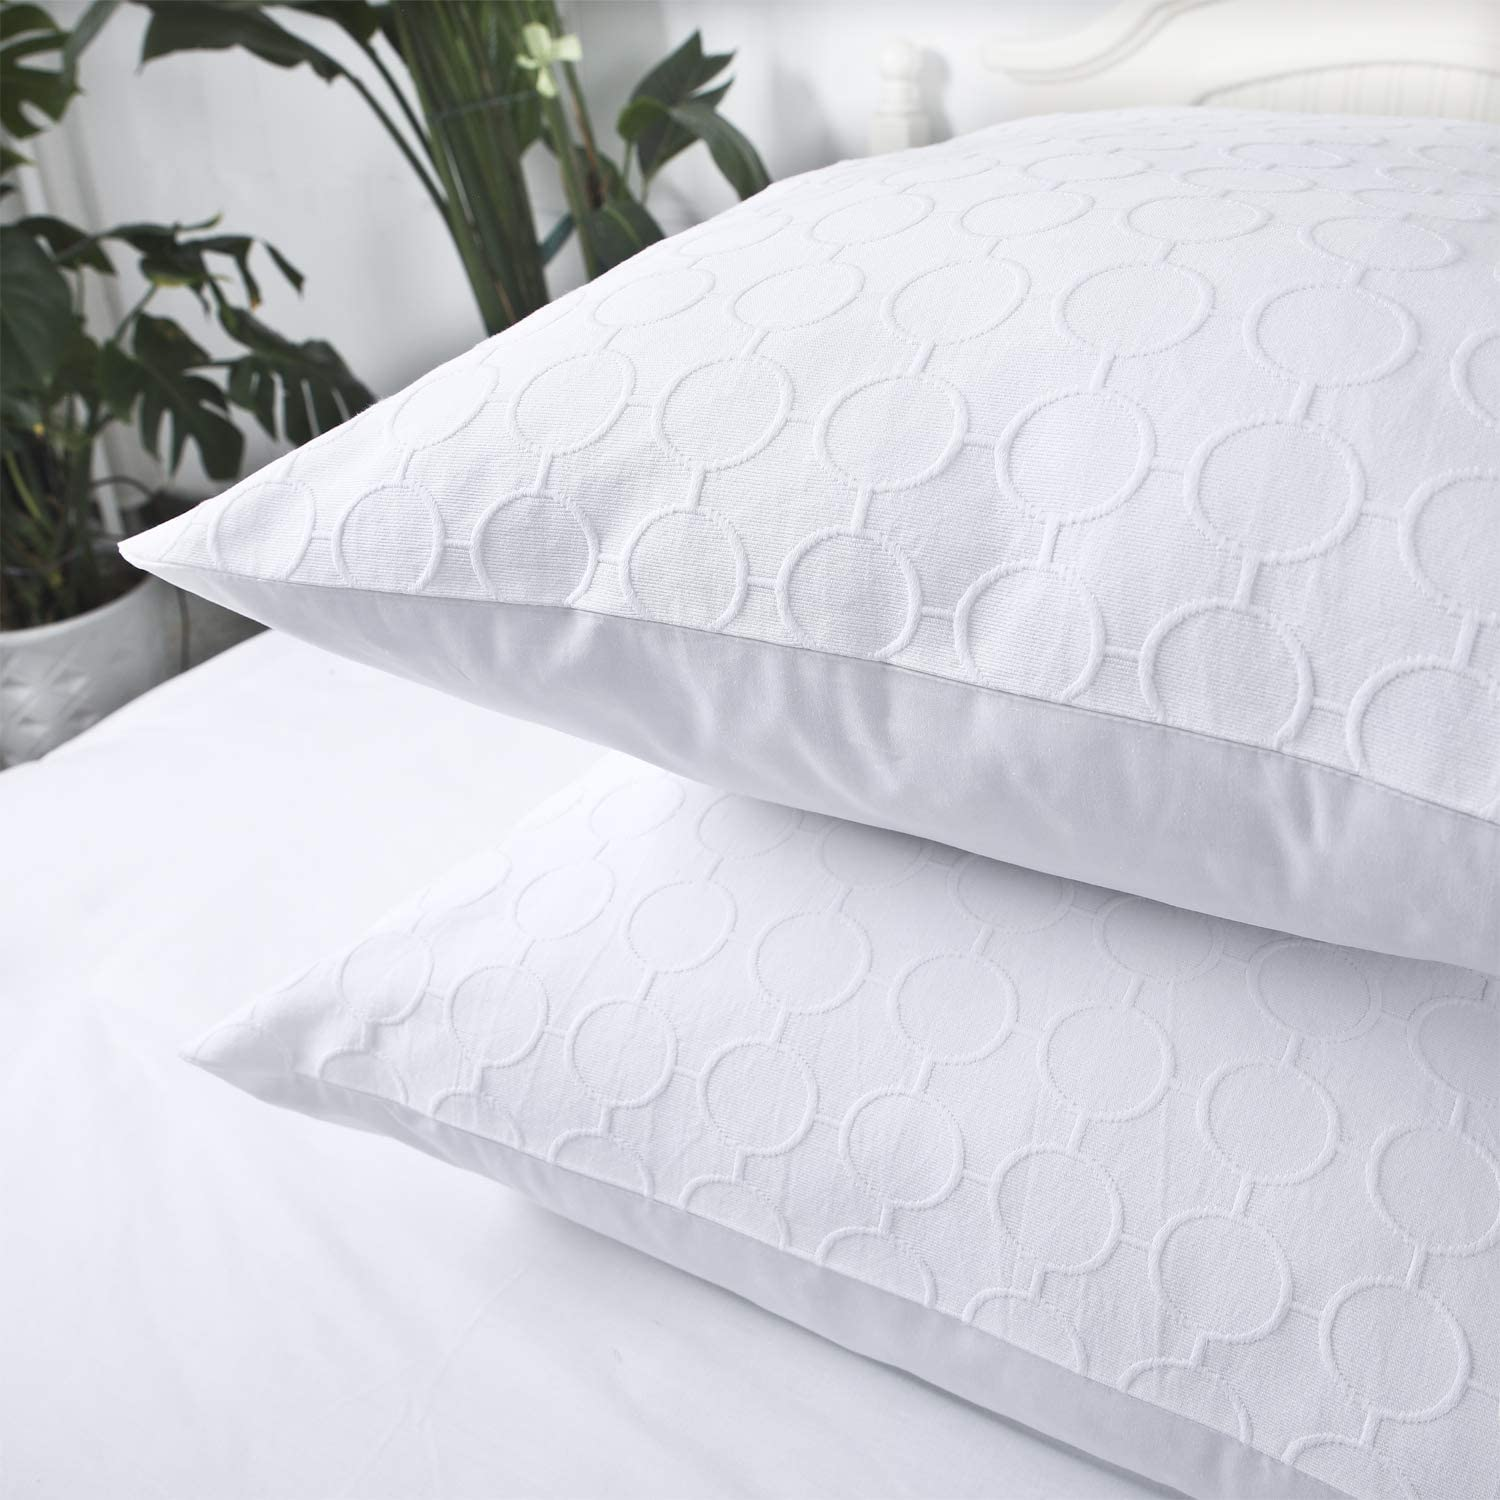 YINFUNG White Pillow Shams Standard Set of 2 Polka Dot Matelasse Pillowcases Quilted Pattern Textured Embroidered Weave Geometric Jacquard Cotton Thick Farmhouse 20×26